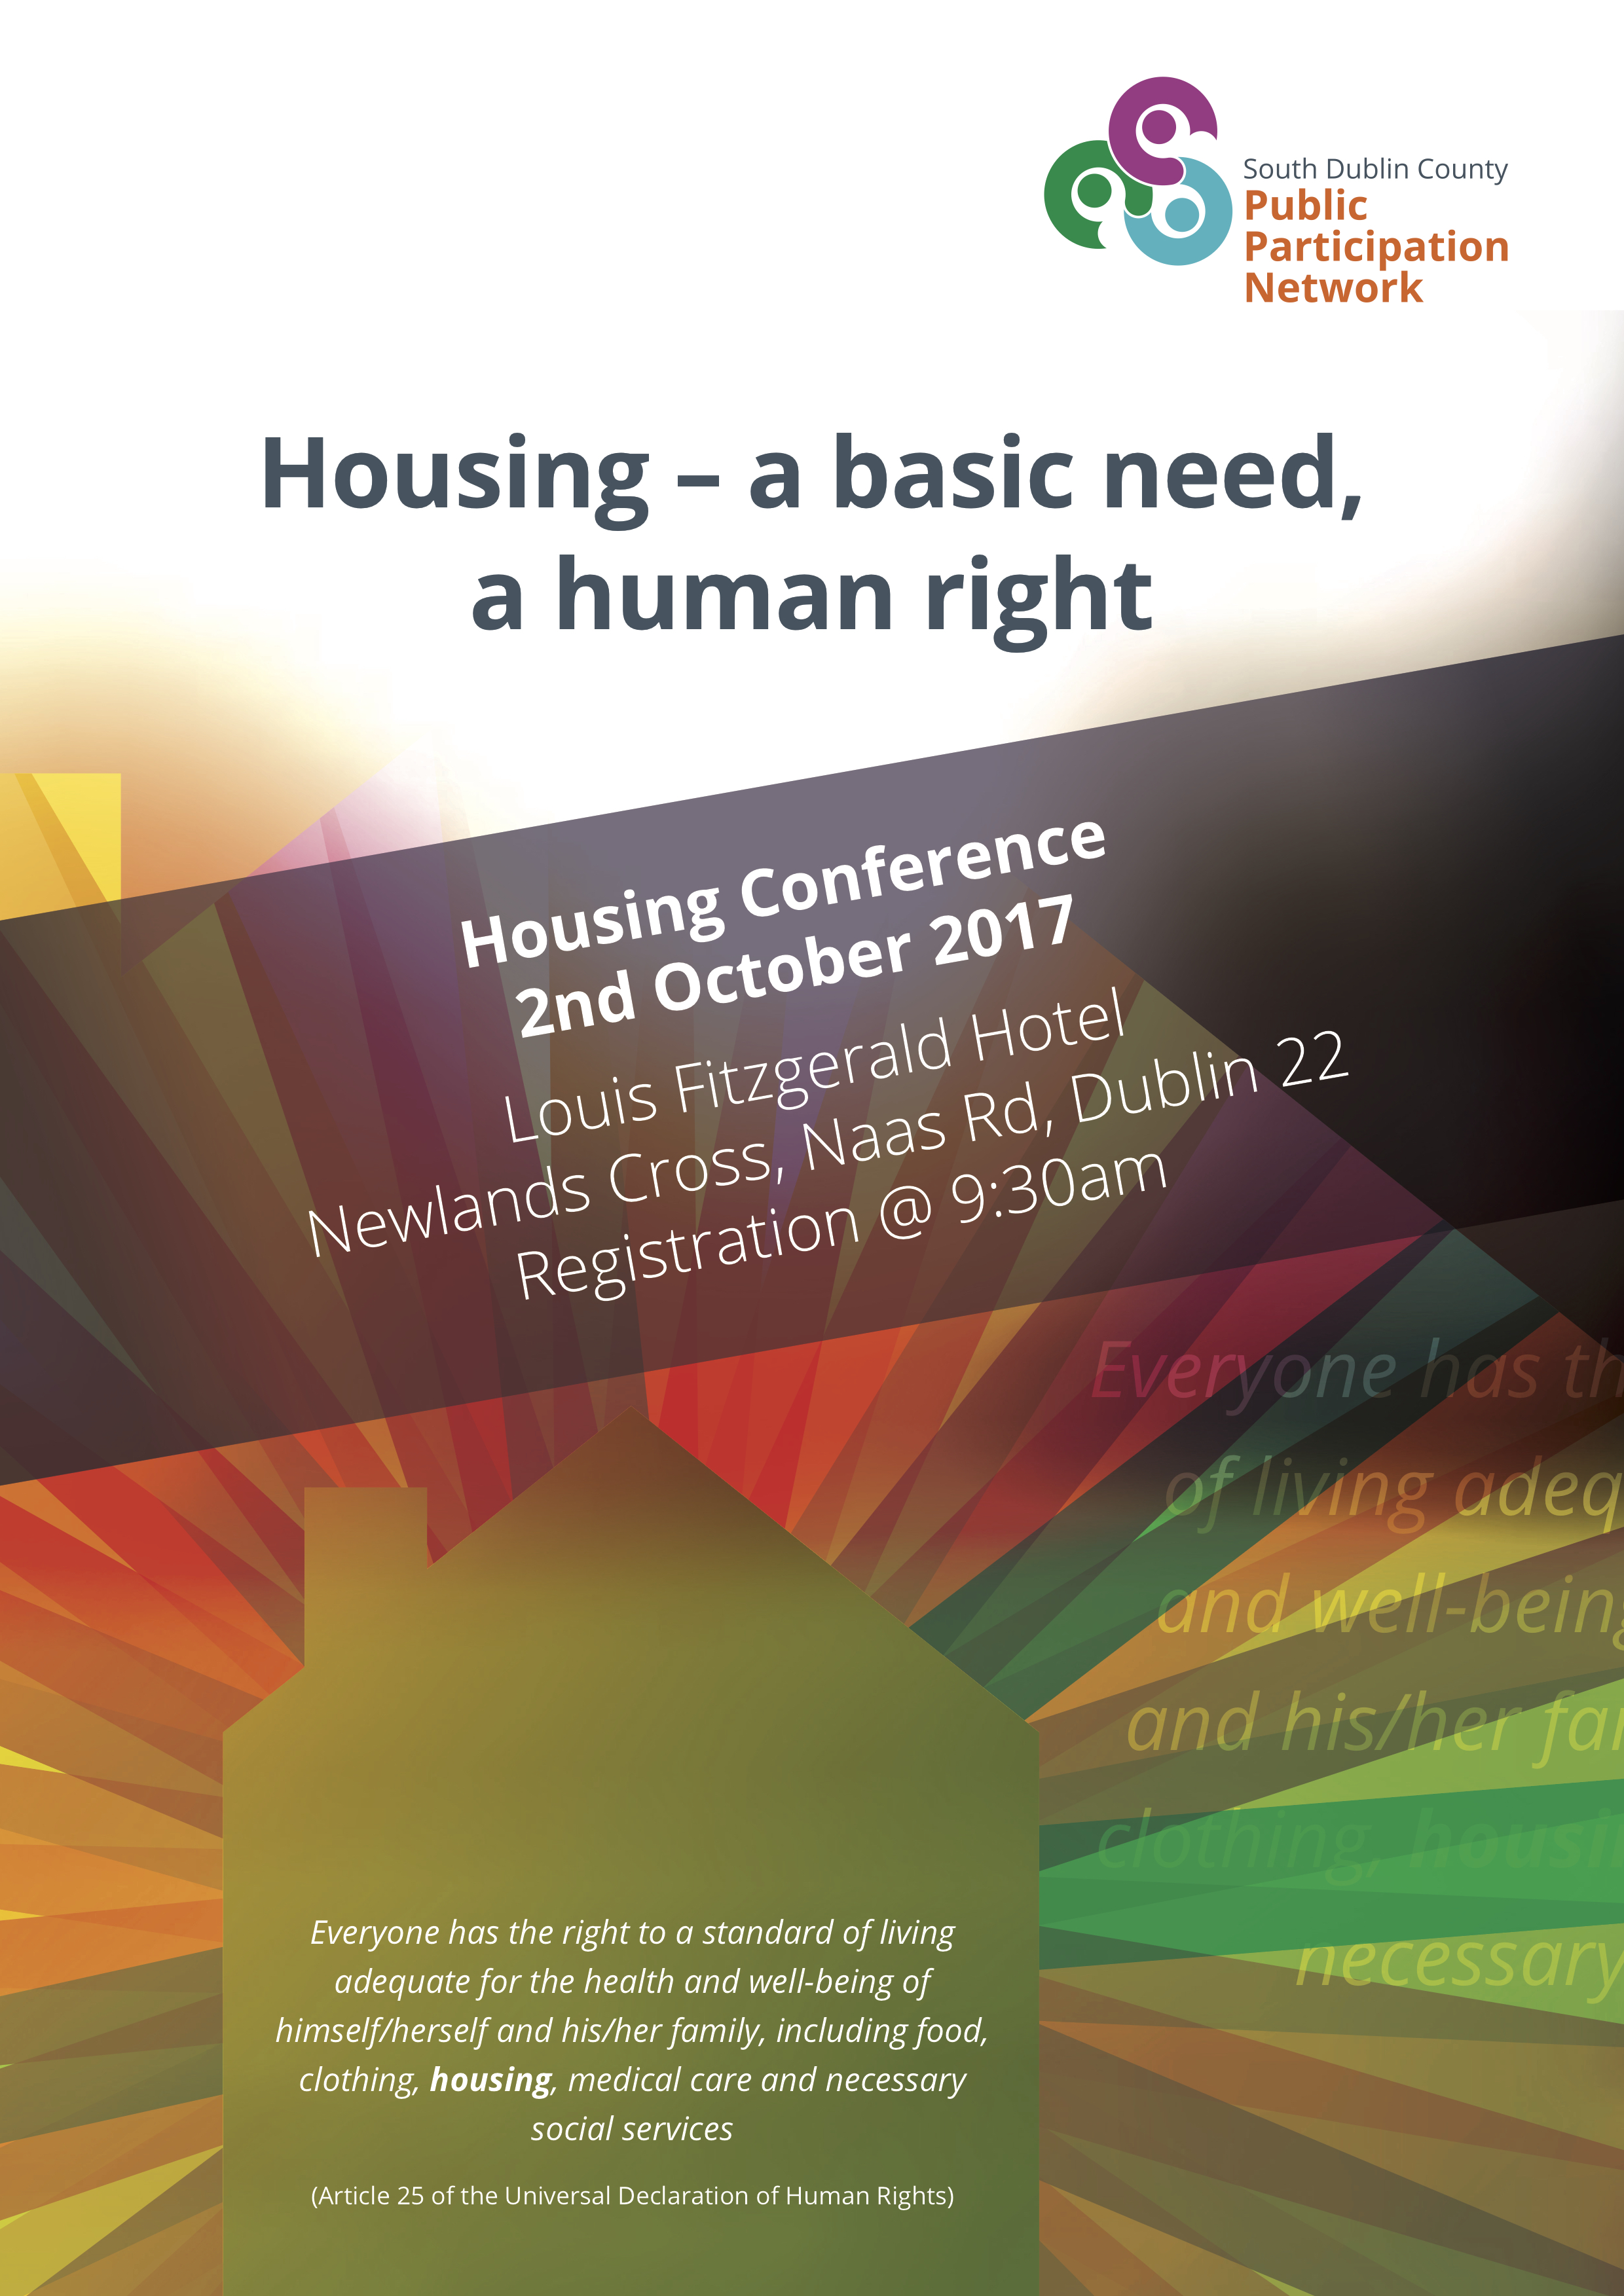 South Dublin County Public Participation Network Housing Conference